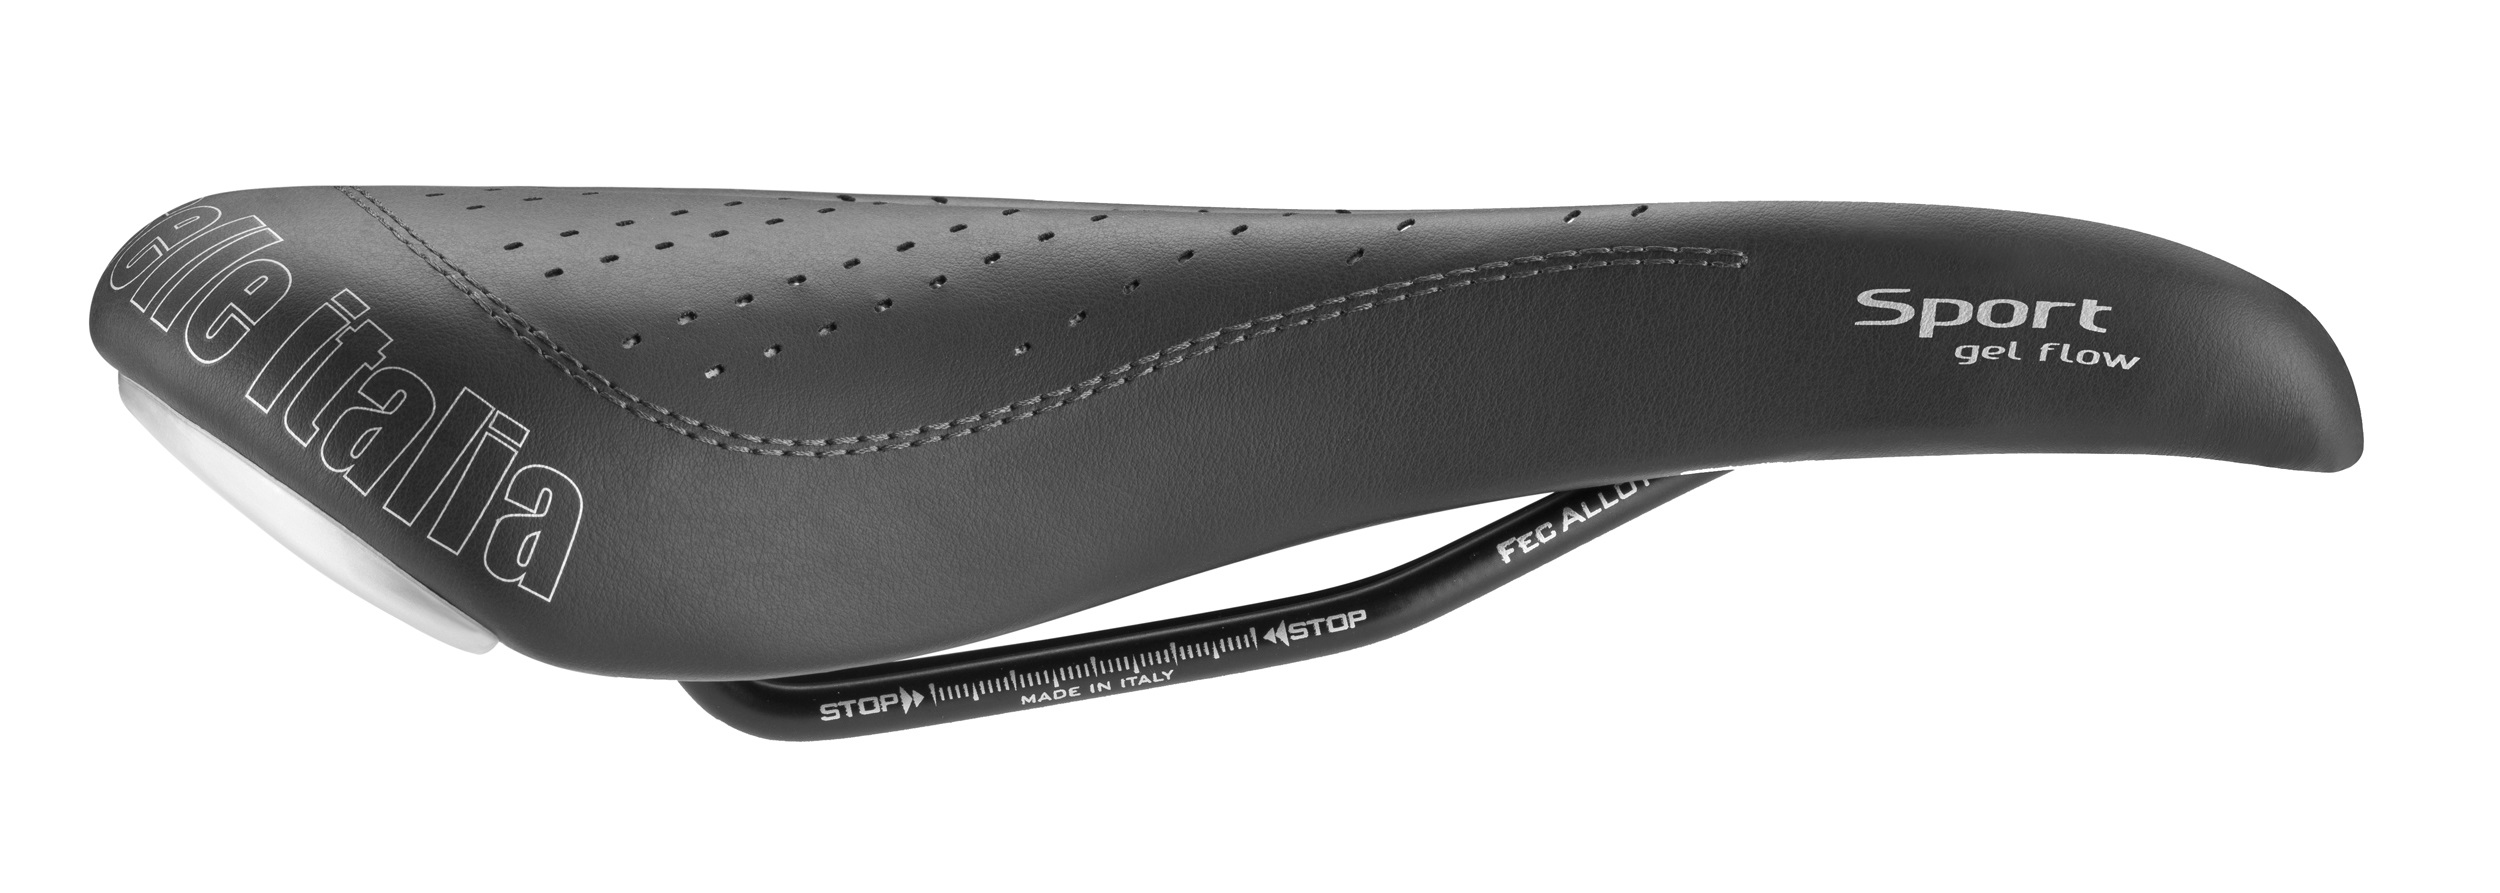 Selle Italia Sports Gel Flow Bicycle Saddle 270x140mm Bl